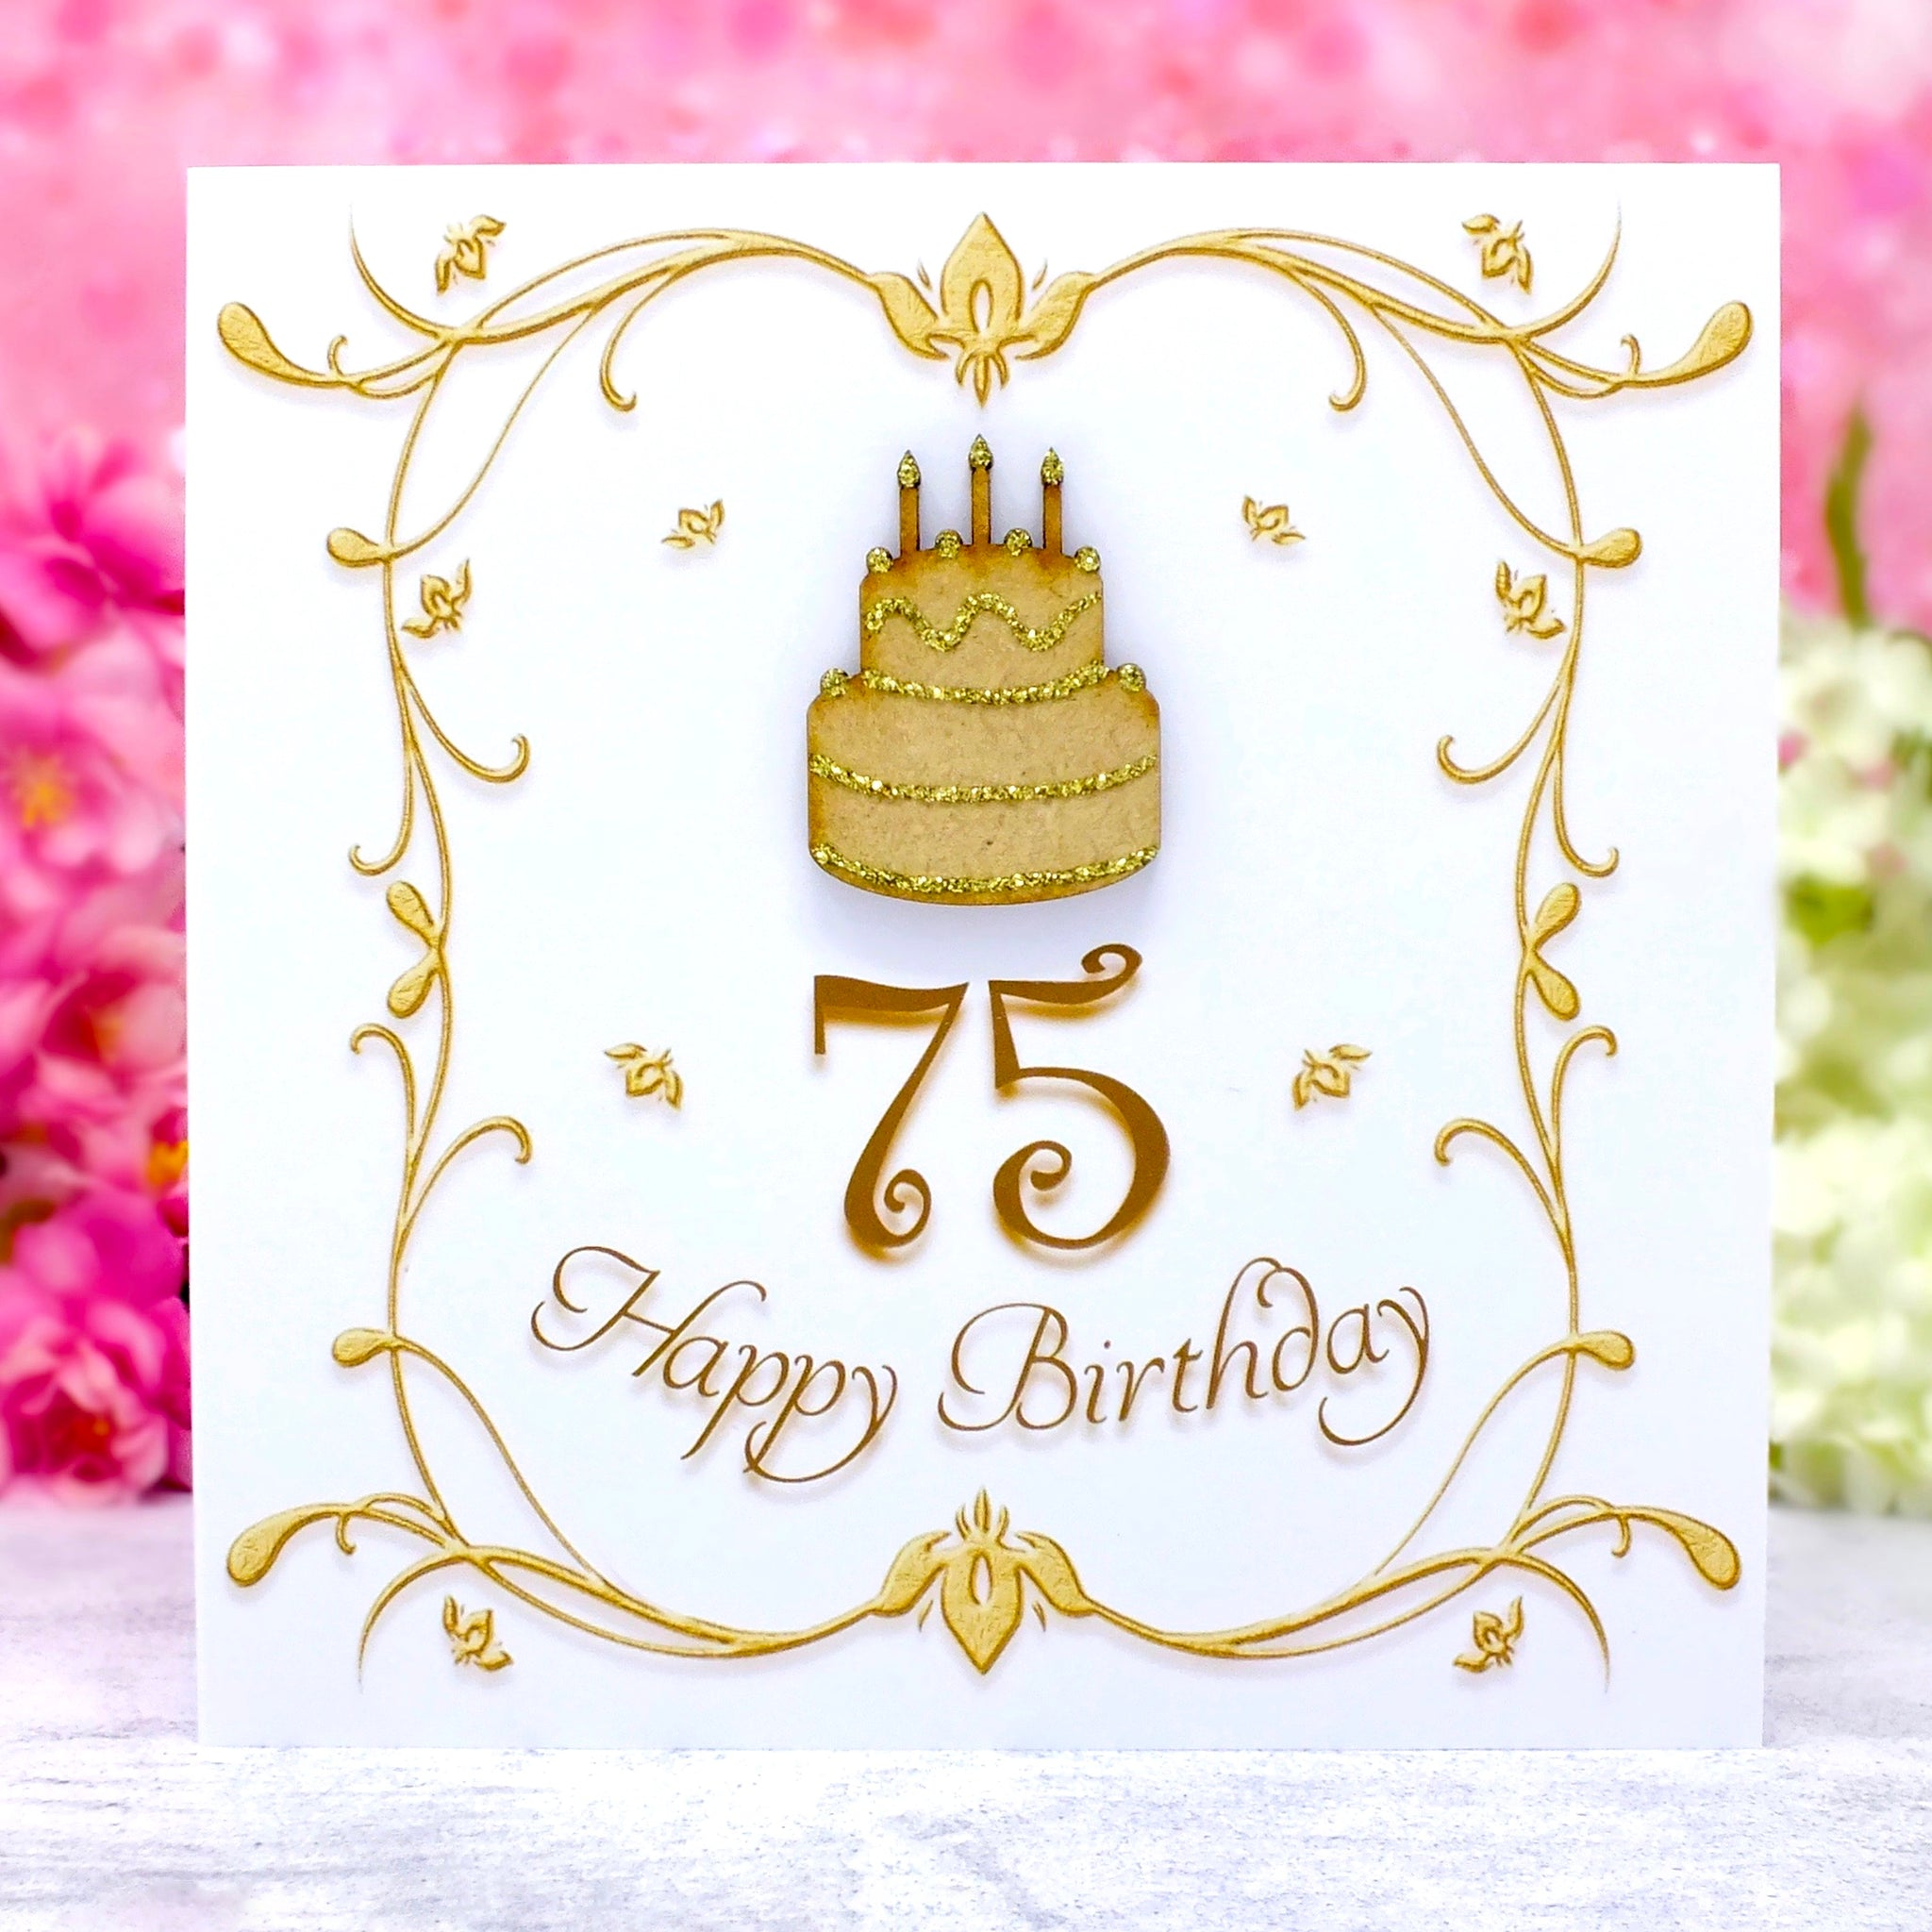 75th Birthday Card - Wooden Birthday Cake Main